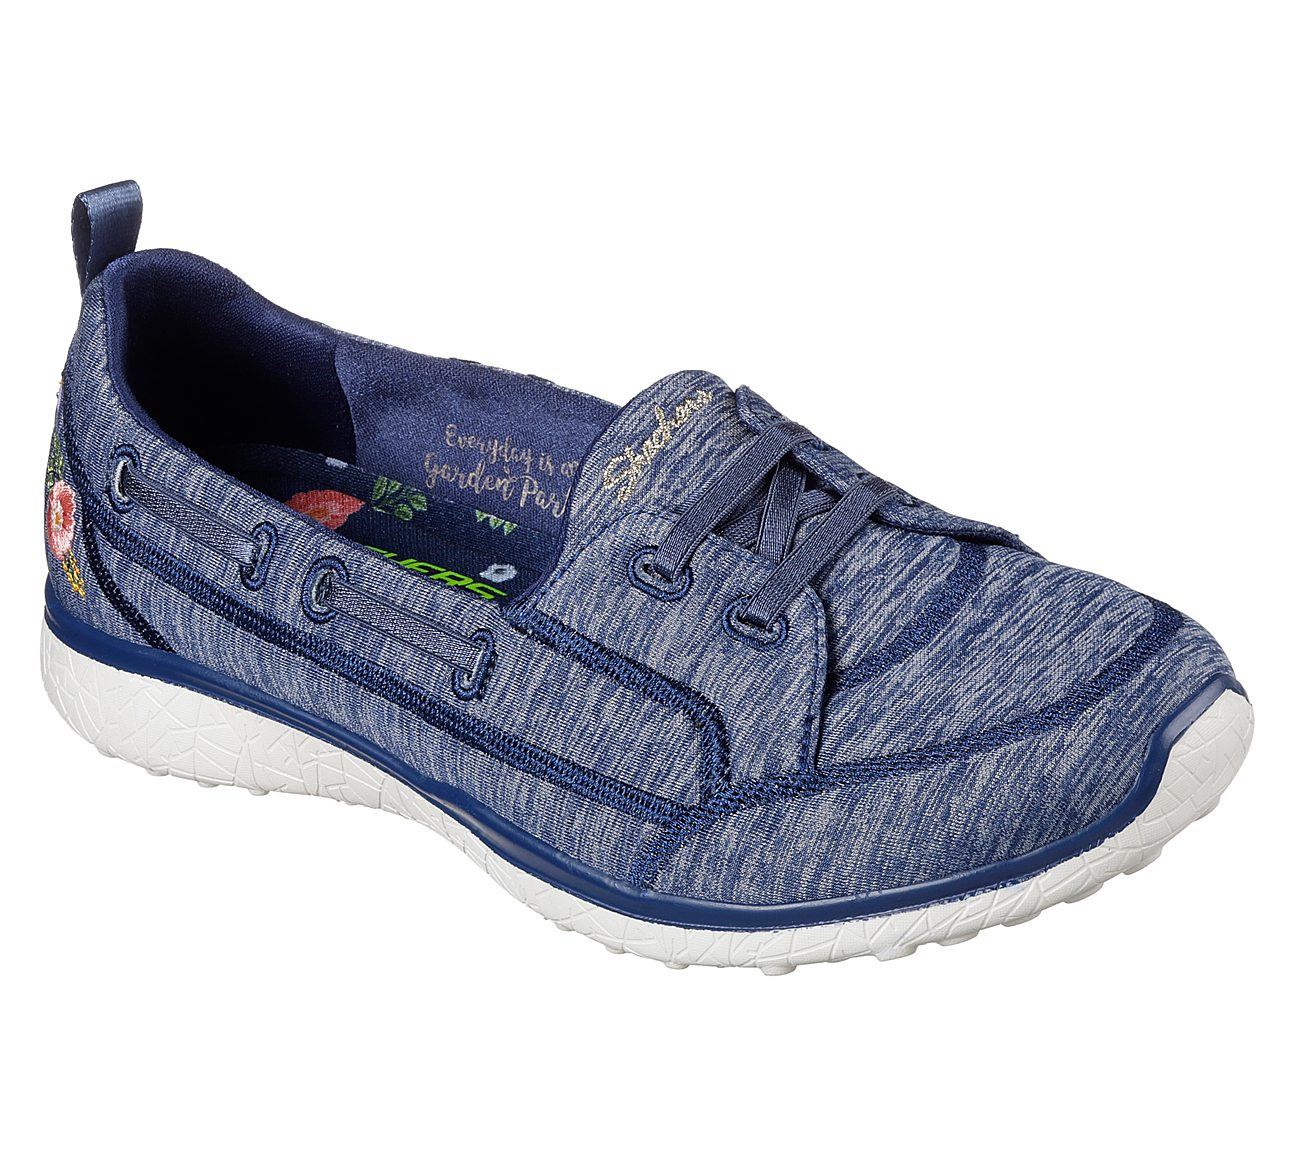 8719e99ca4 Buy SKECHERS Microburst - Beauty Blossom Fashion Fit Shoes only £62.00